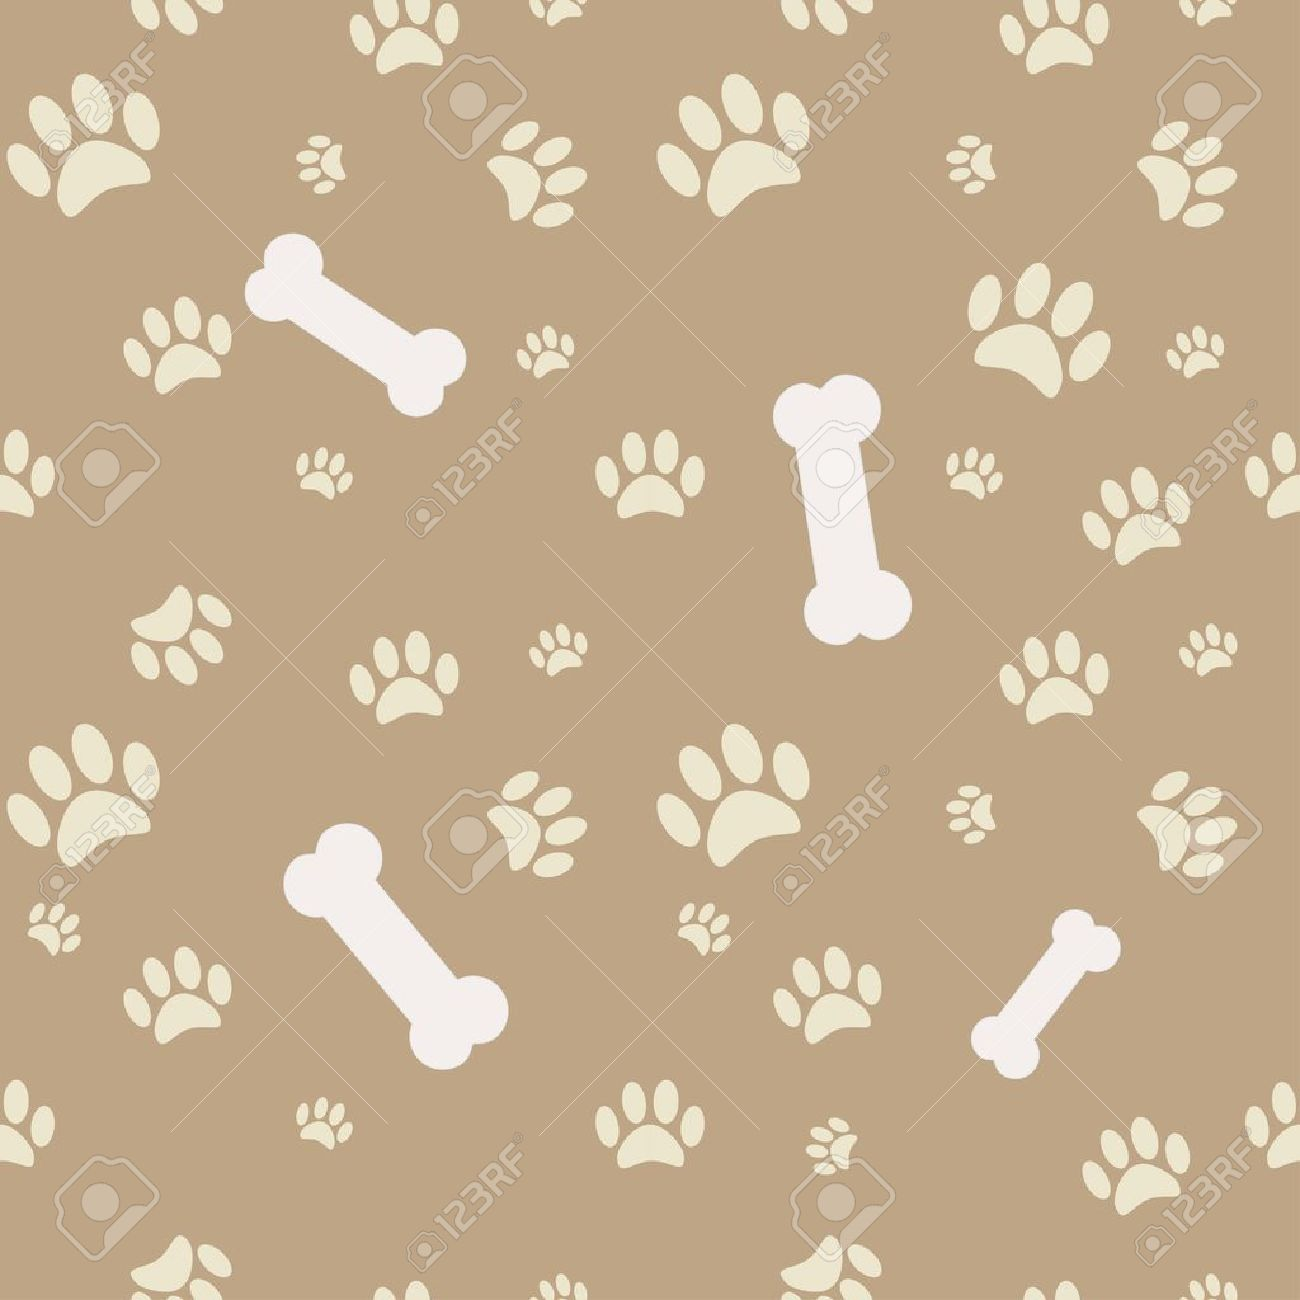 44d293eb6405 Background with dog paw print and bone in brown Stock Vector - 13169548